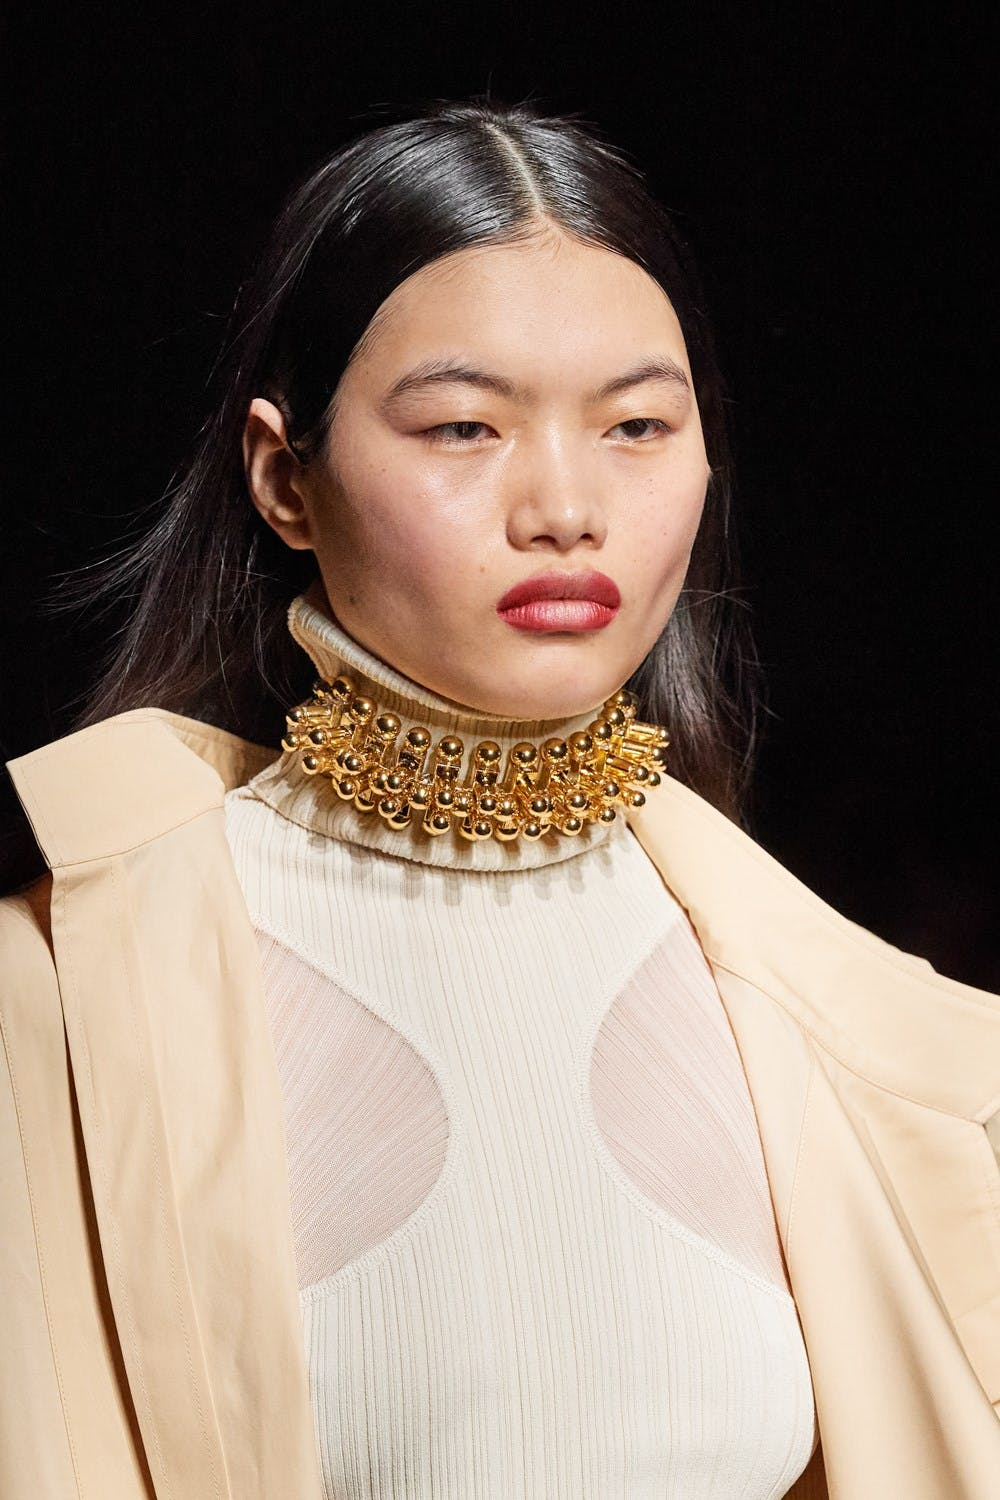 Mugler Runway Details Turtleneck Sheer Cutout Dress in White Chunky Choker in Gold	Fall 20 RTW